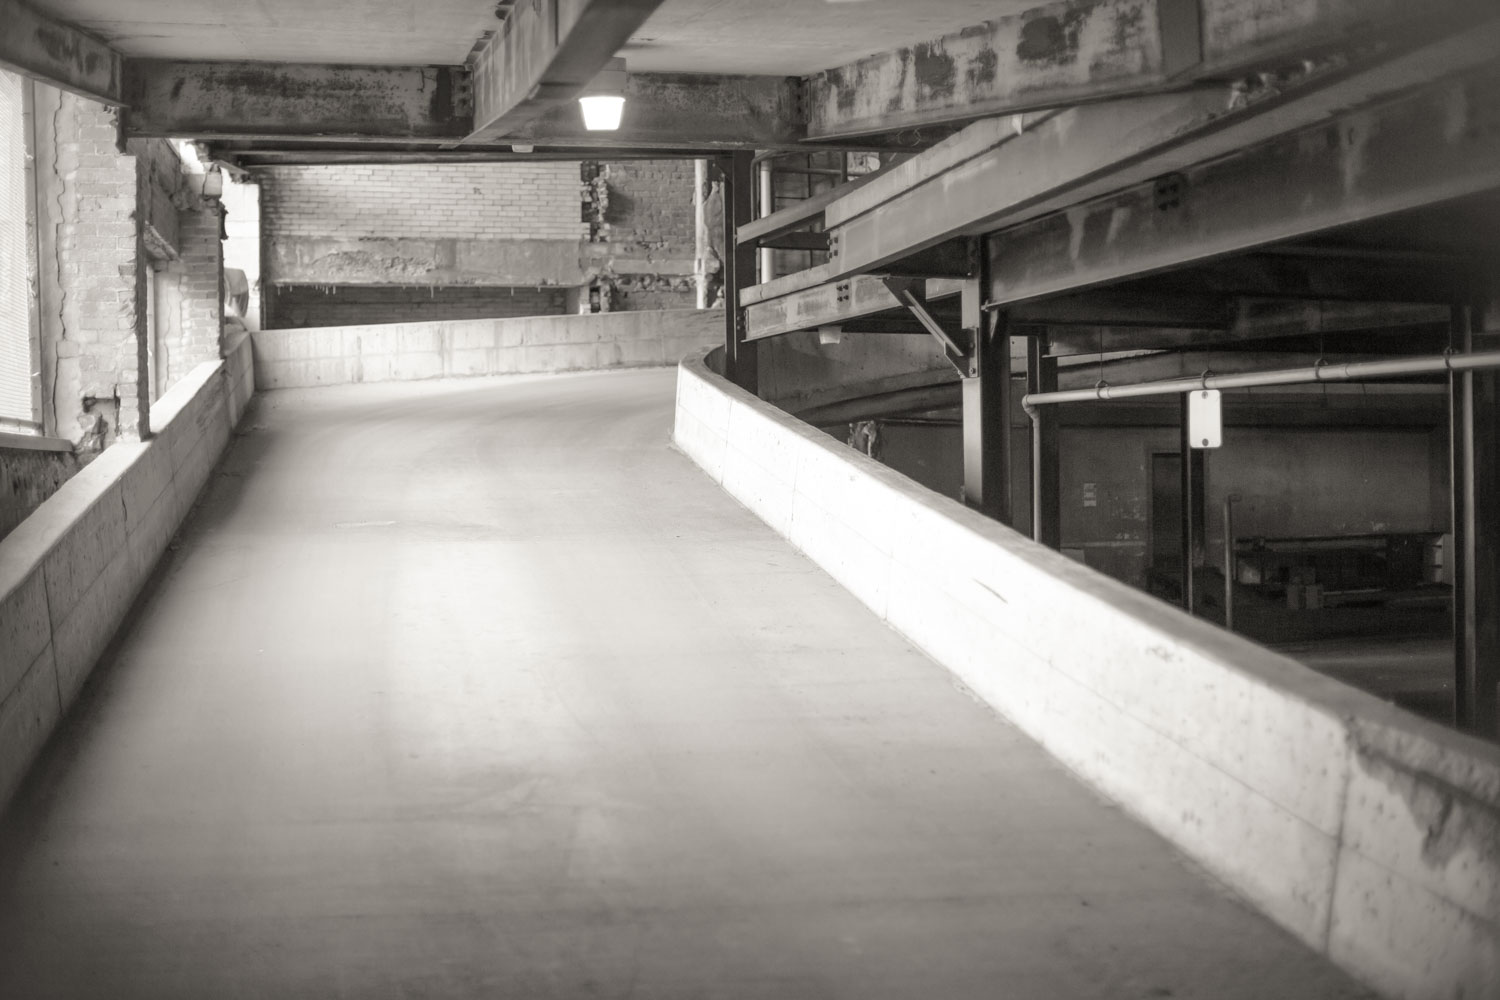 How to Use Low Graphic Style as a Compositional Tool - parking garage in b/w